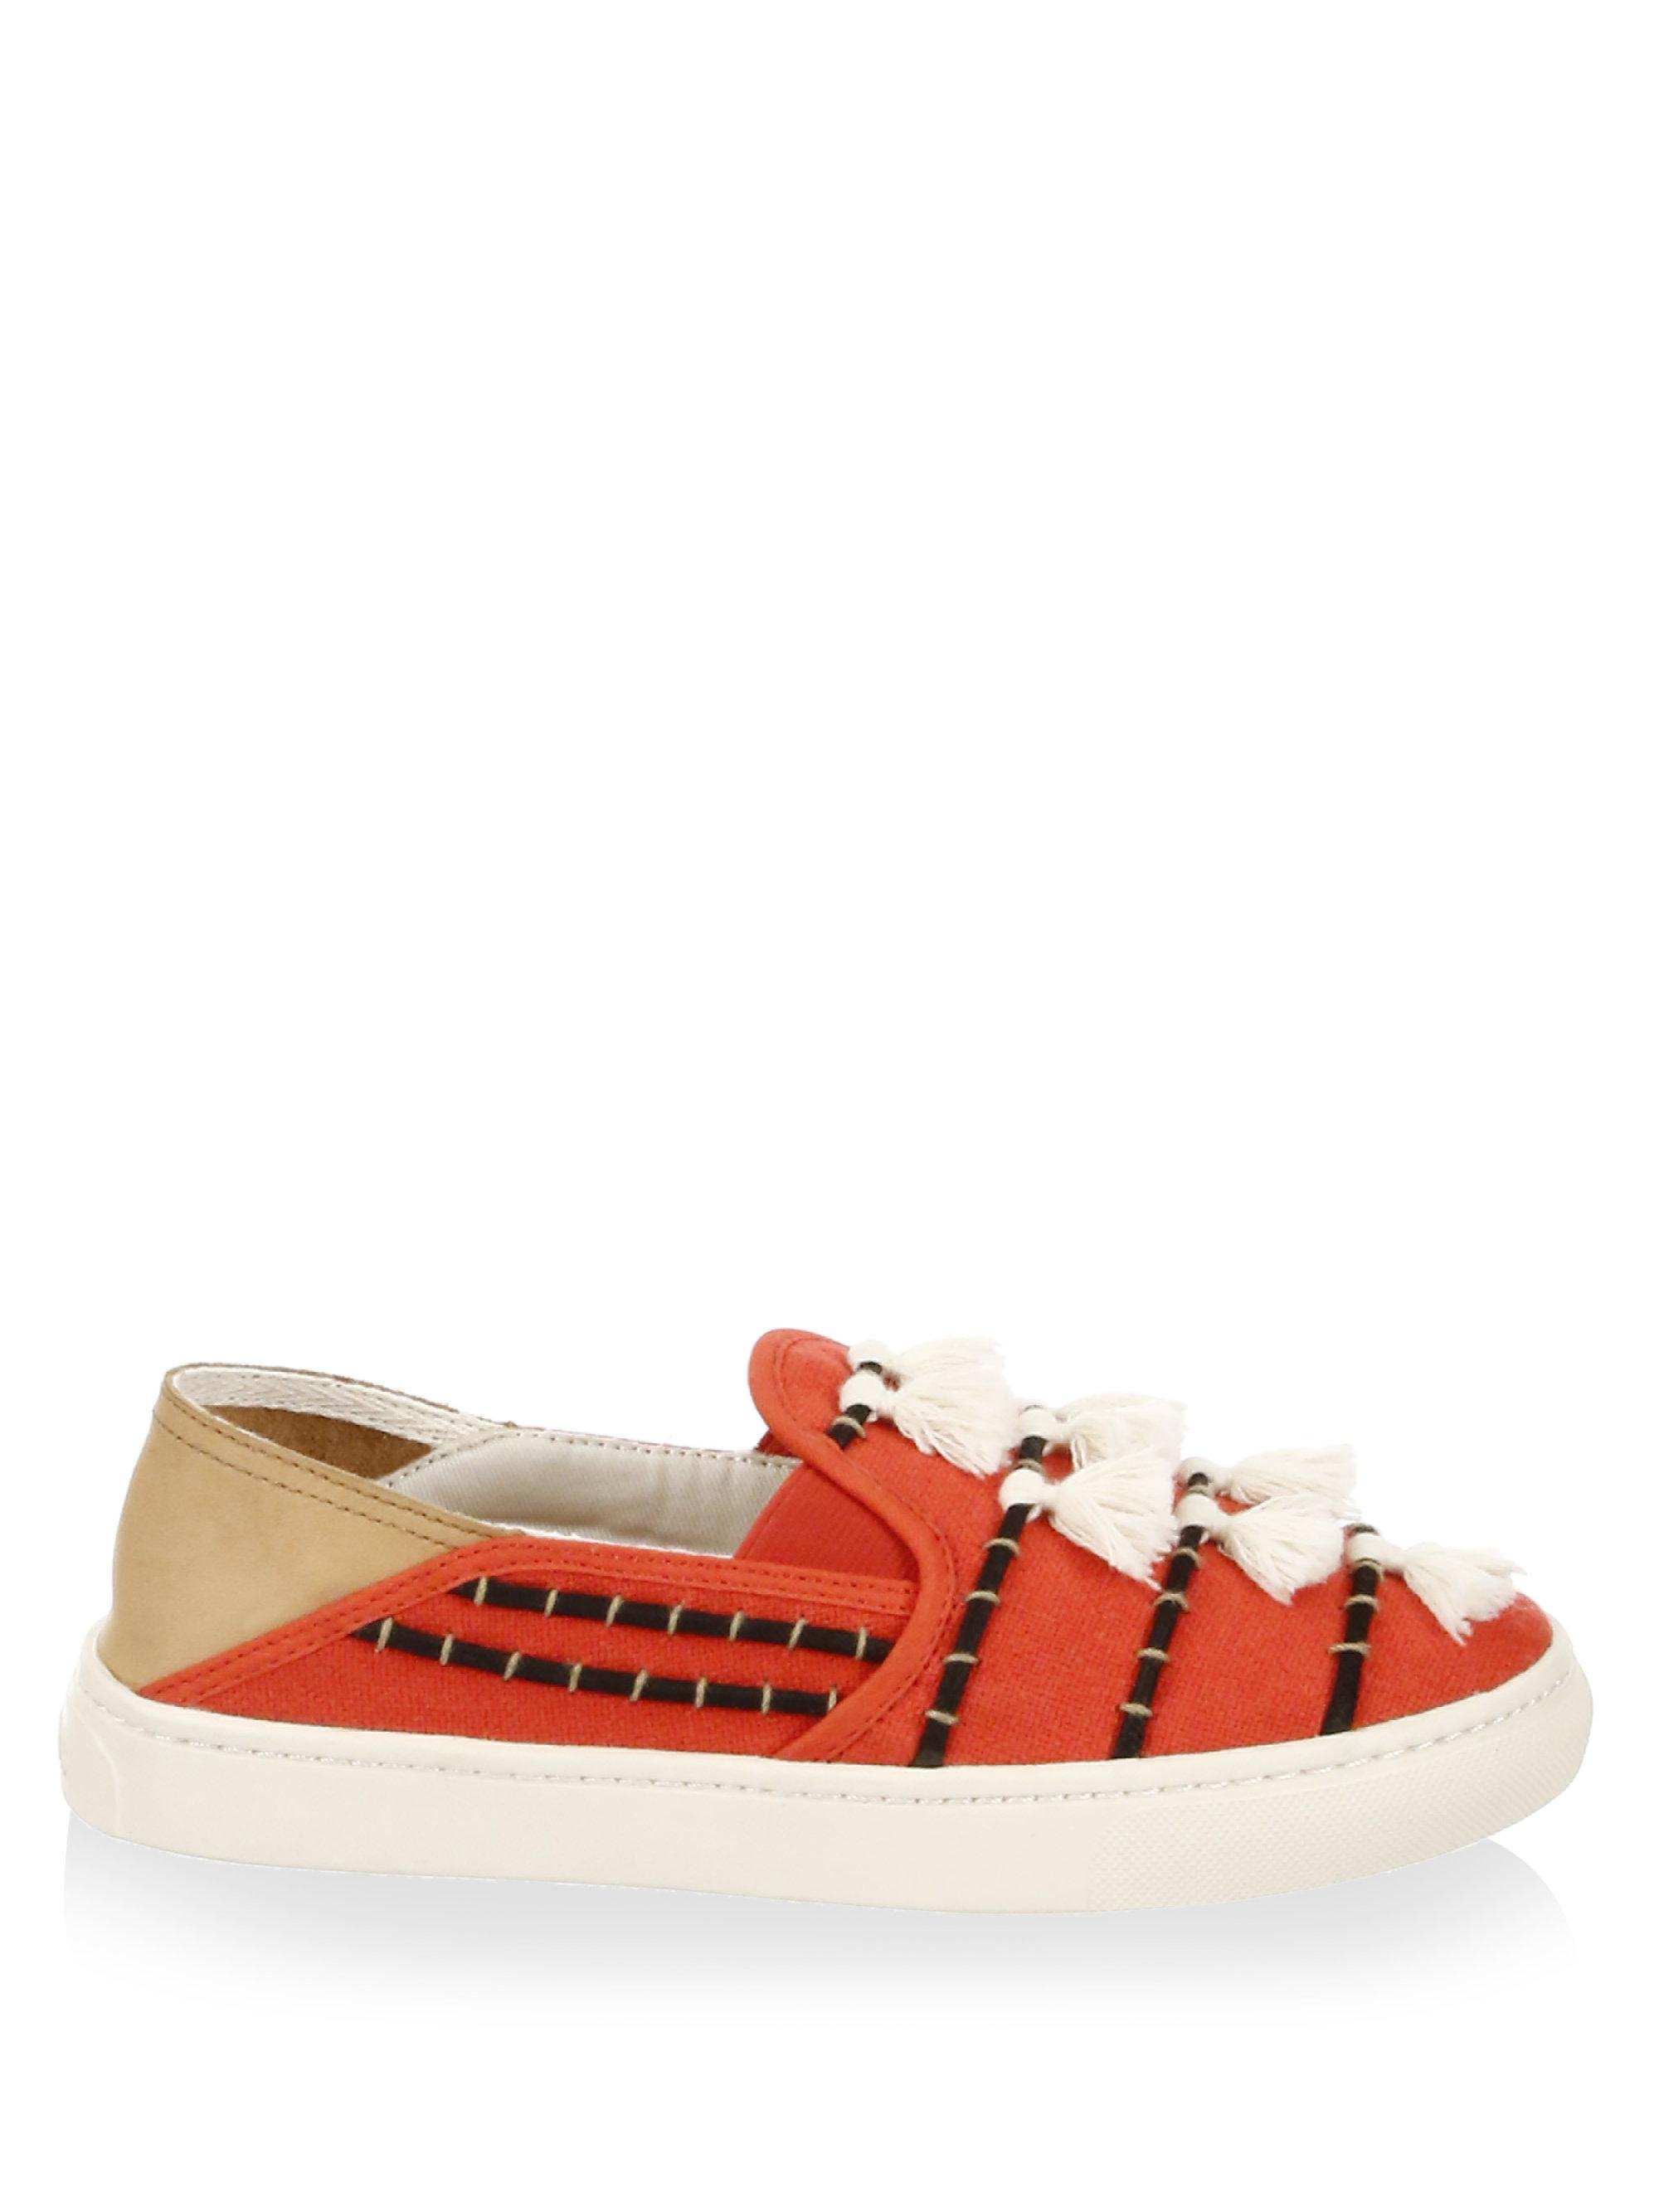 Soludos Tassel Cotton Canvas Slip-On Sneakers 7f1AGK